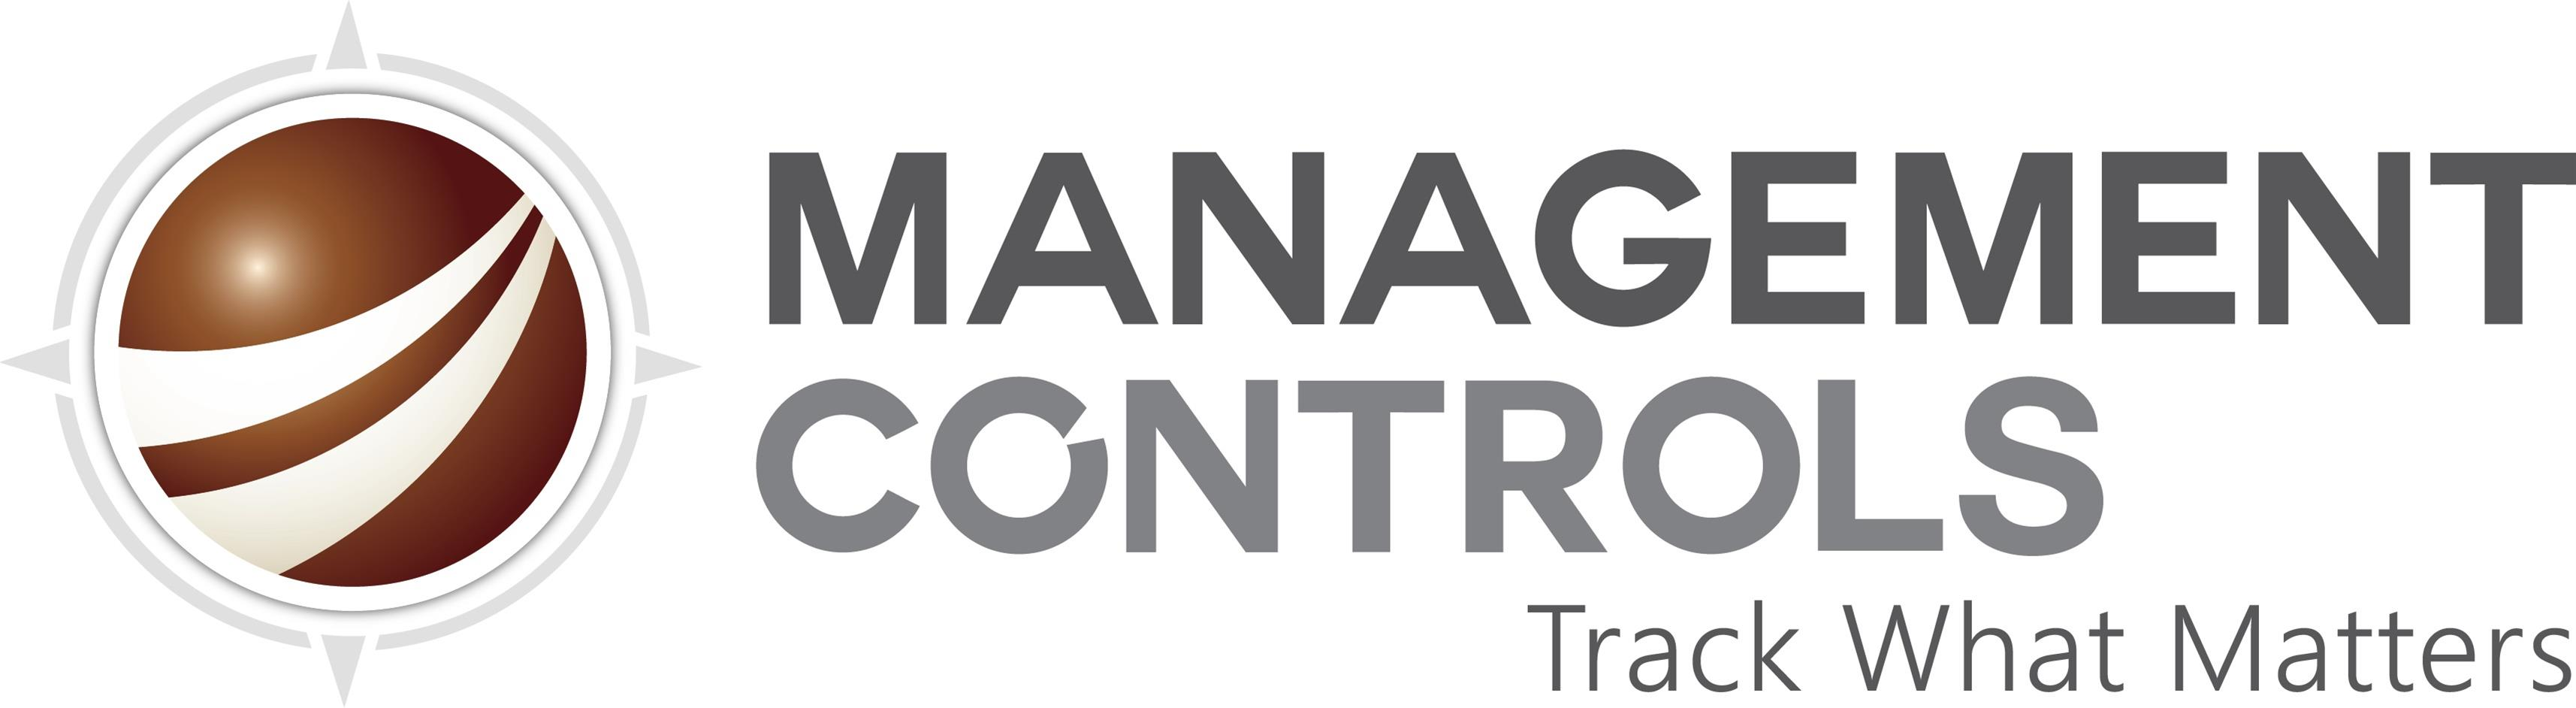 Management Controls, Inc.